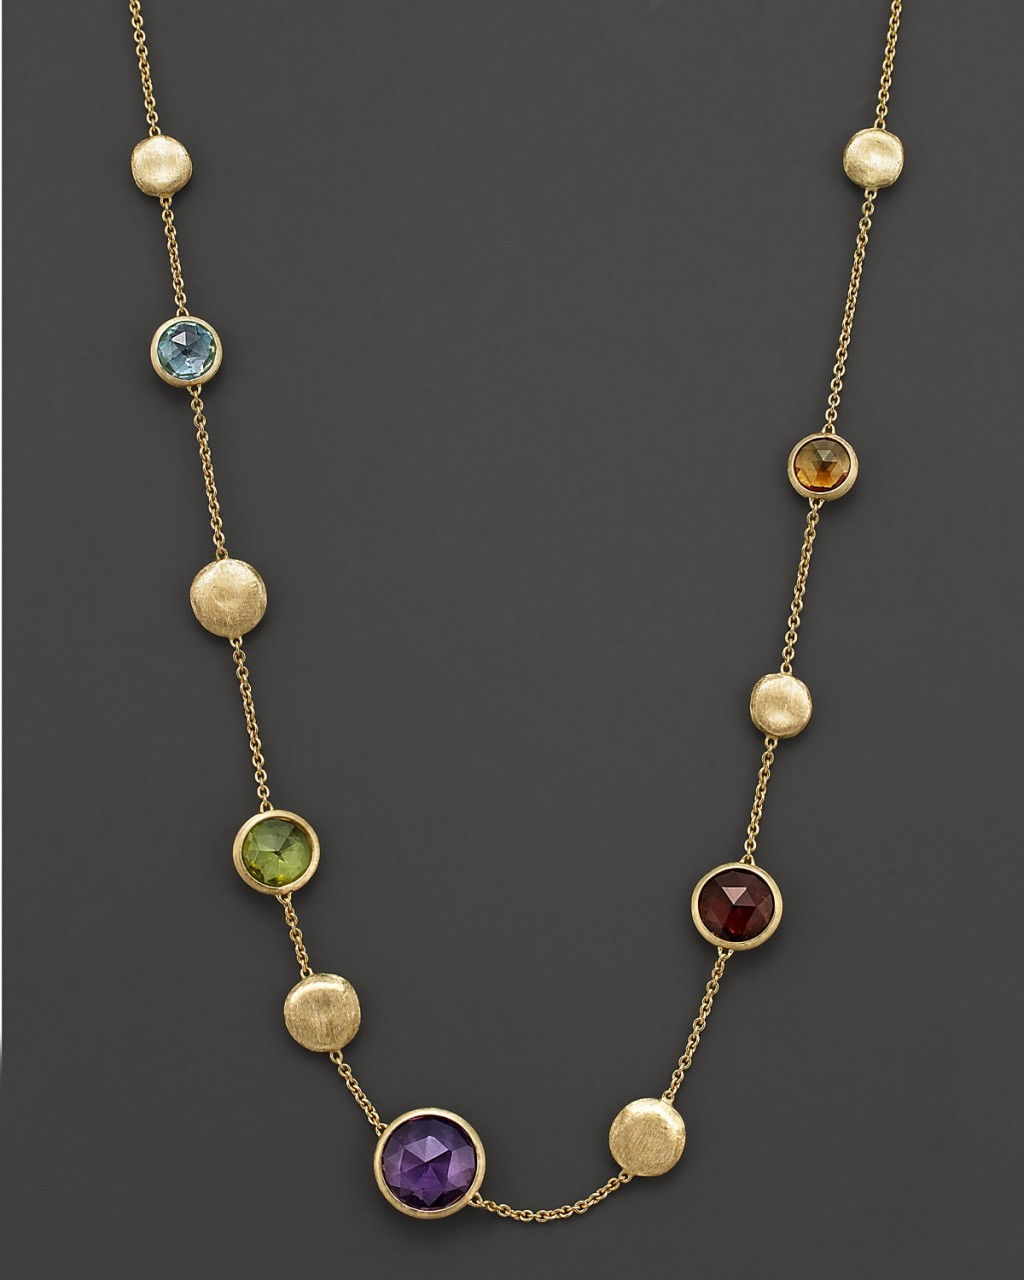 8 Lovely Marco Bicego Jaipur Necklace in Jewelry